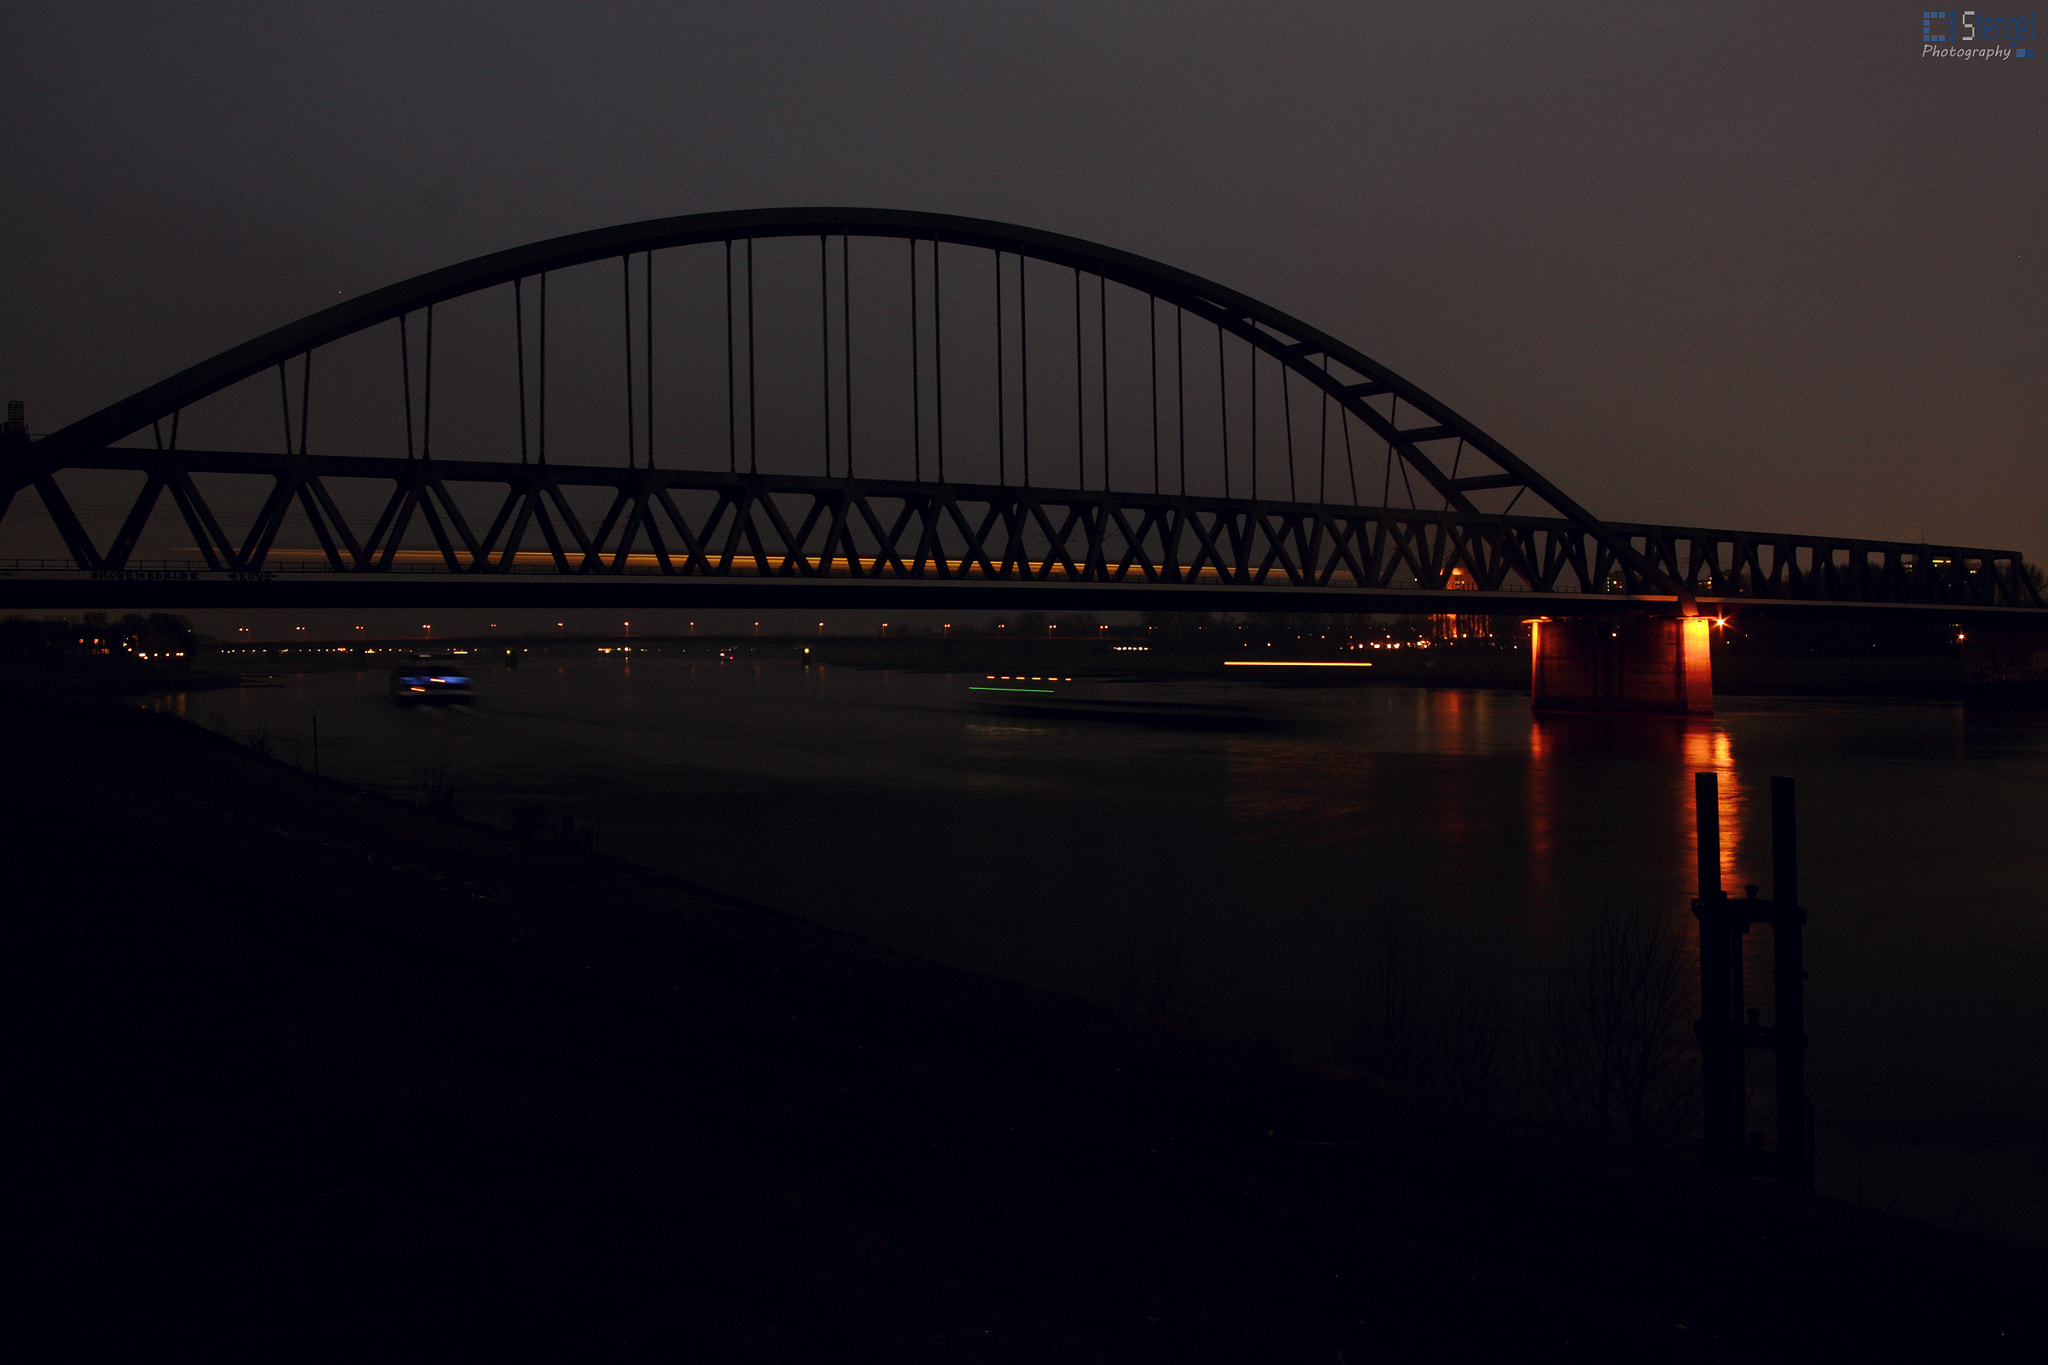 Photograph Duesseldorf Rhinebridge by Christian Stengel on 500px